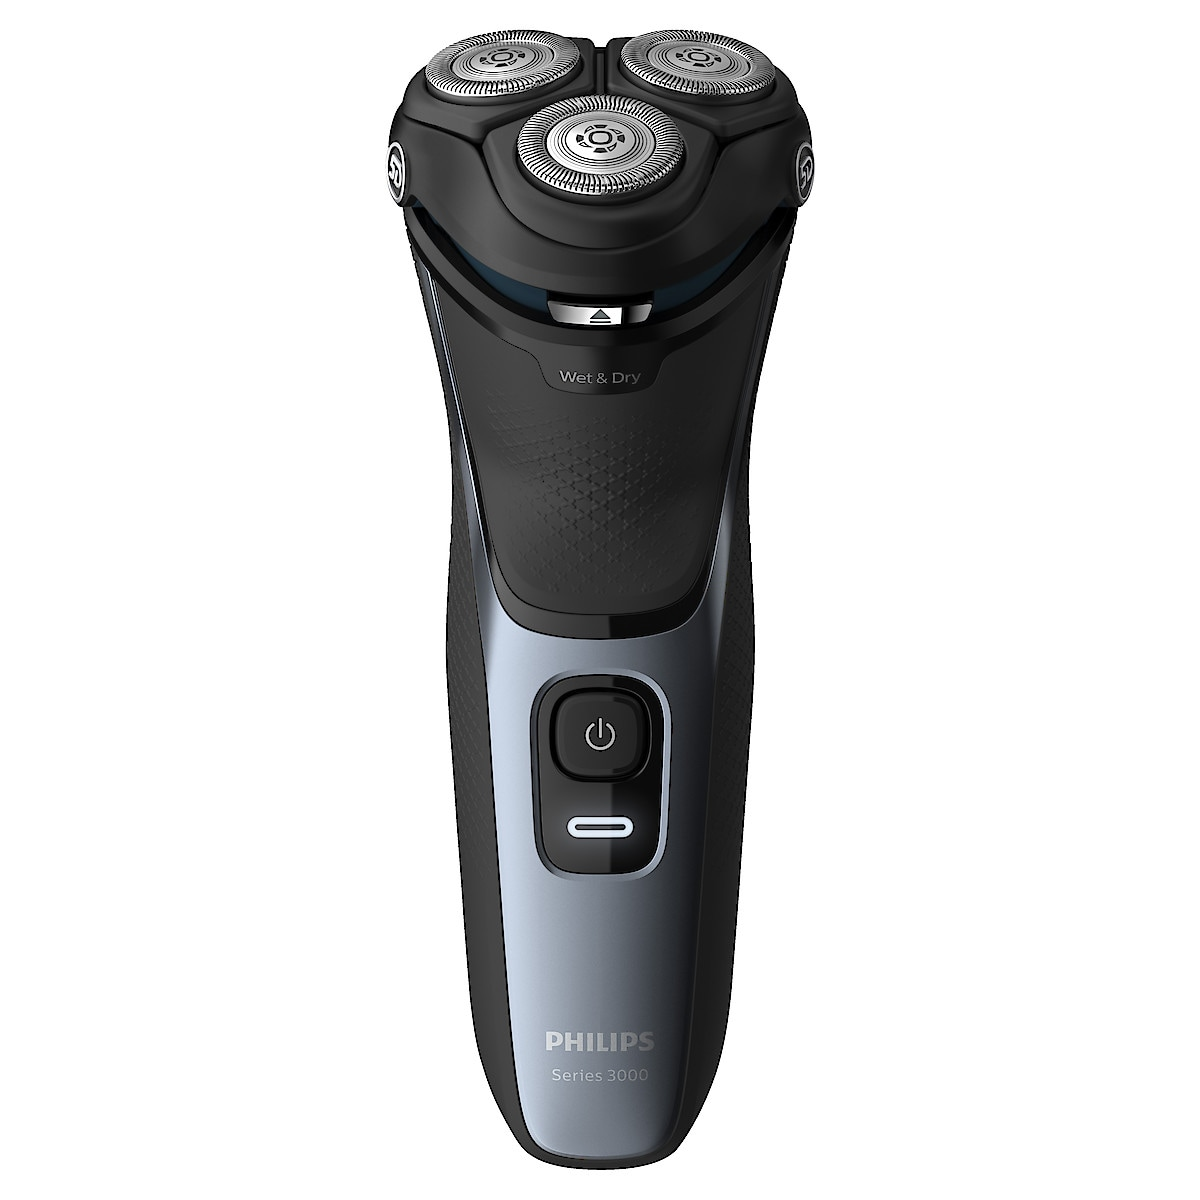 Rakapparat Philips Wet & Dry S3133/51